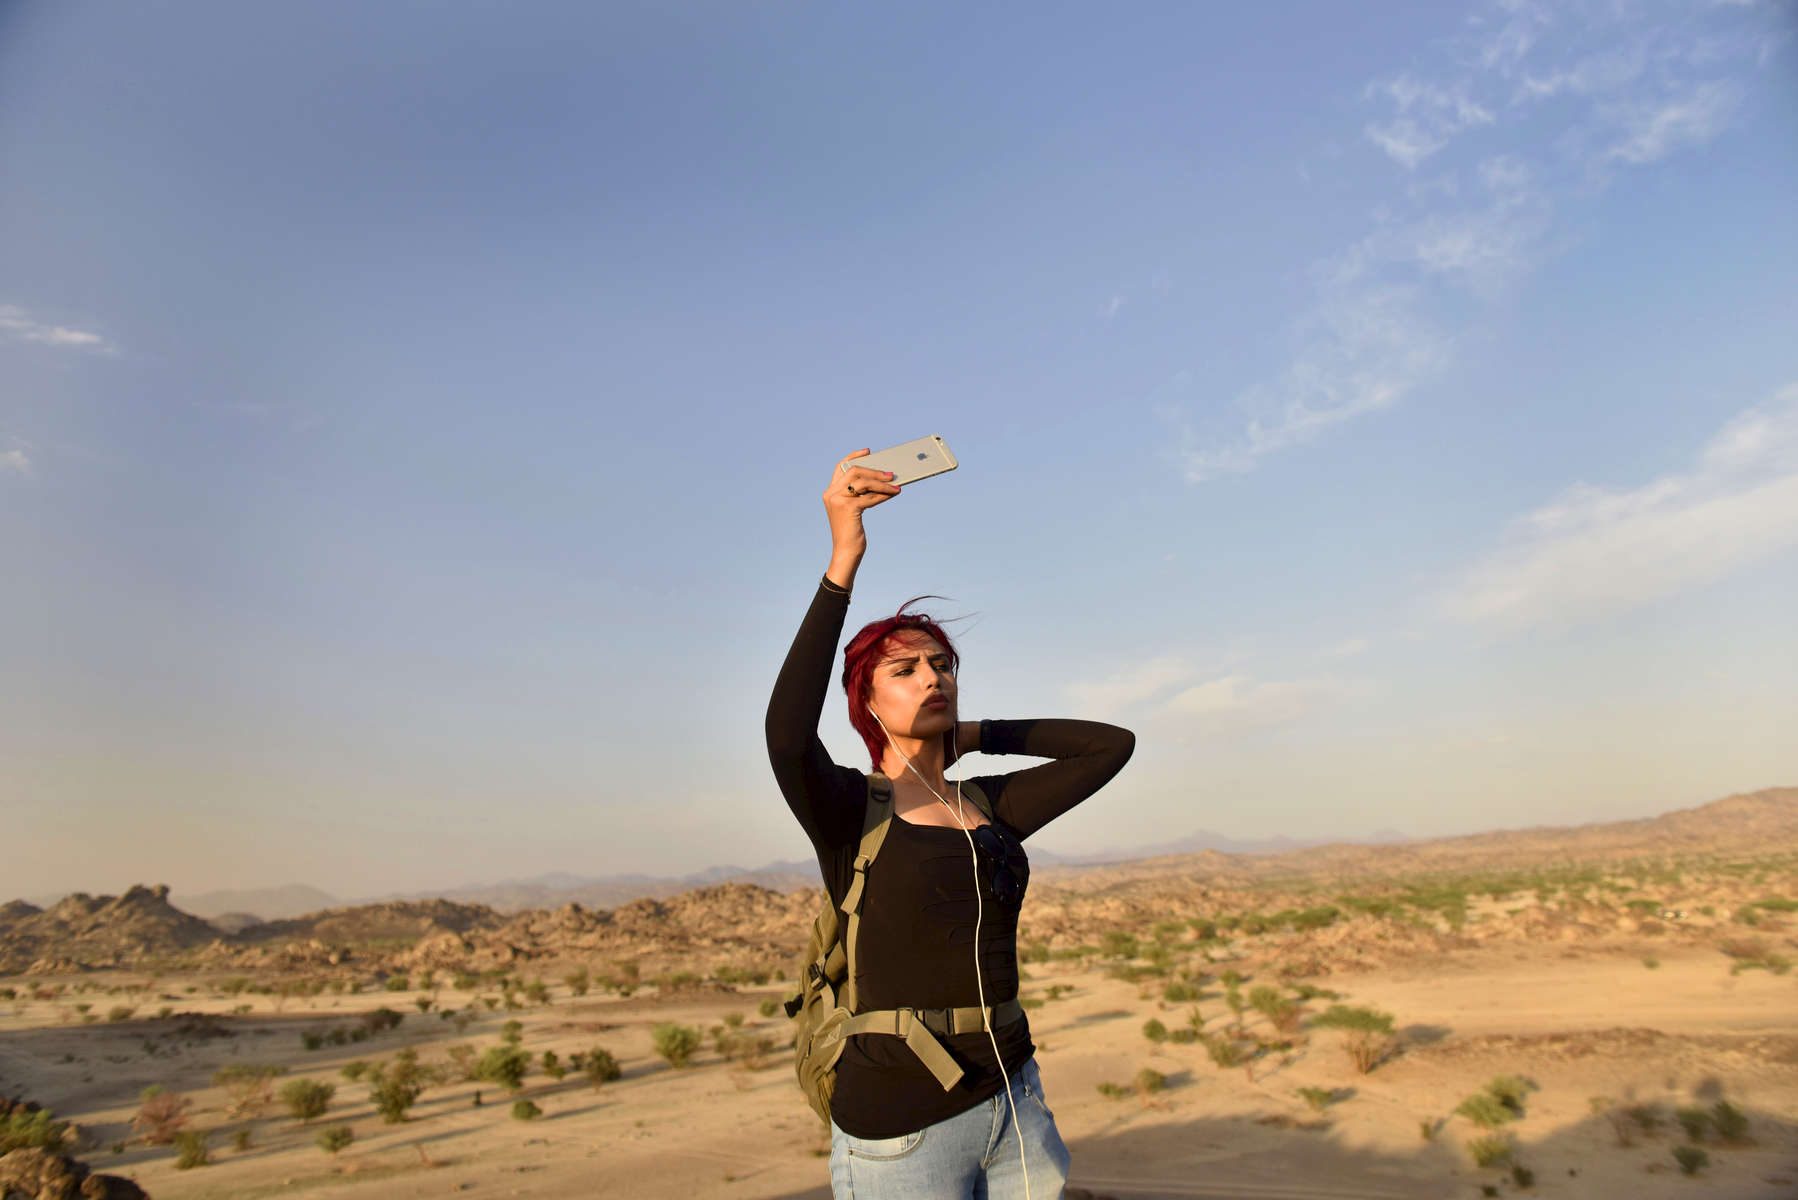 A young Saudi woman does a selfie while on an forbidden co-ed hike in the desert outside of Jeddah, Saudi Arabia, May 2015.